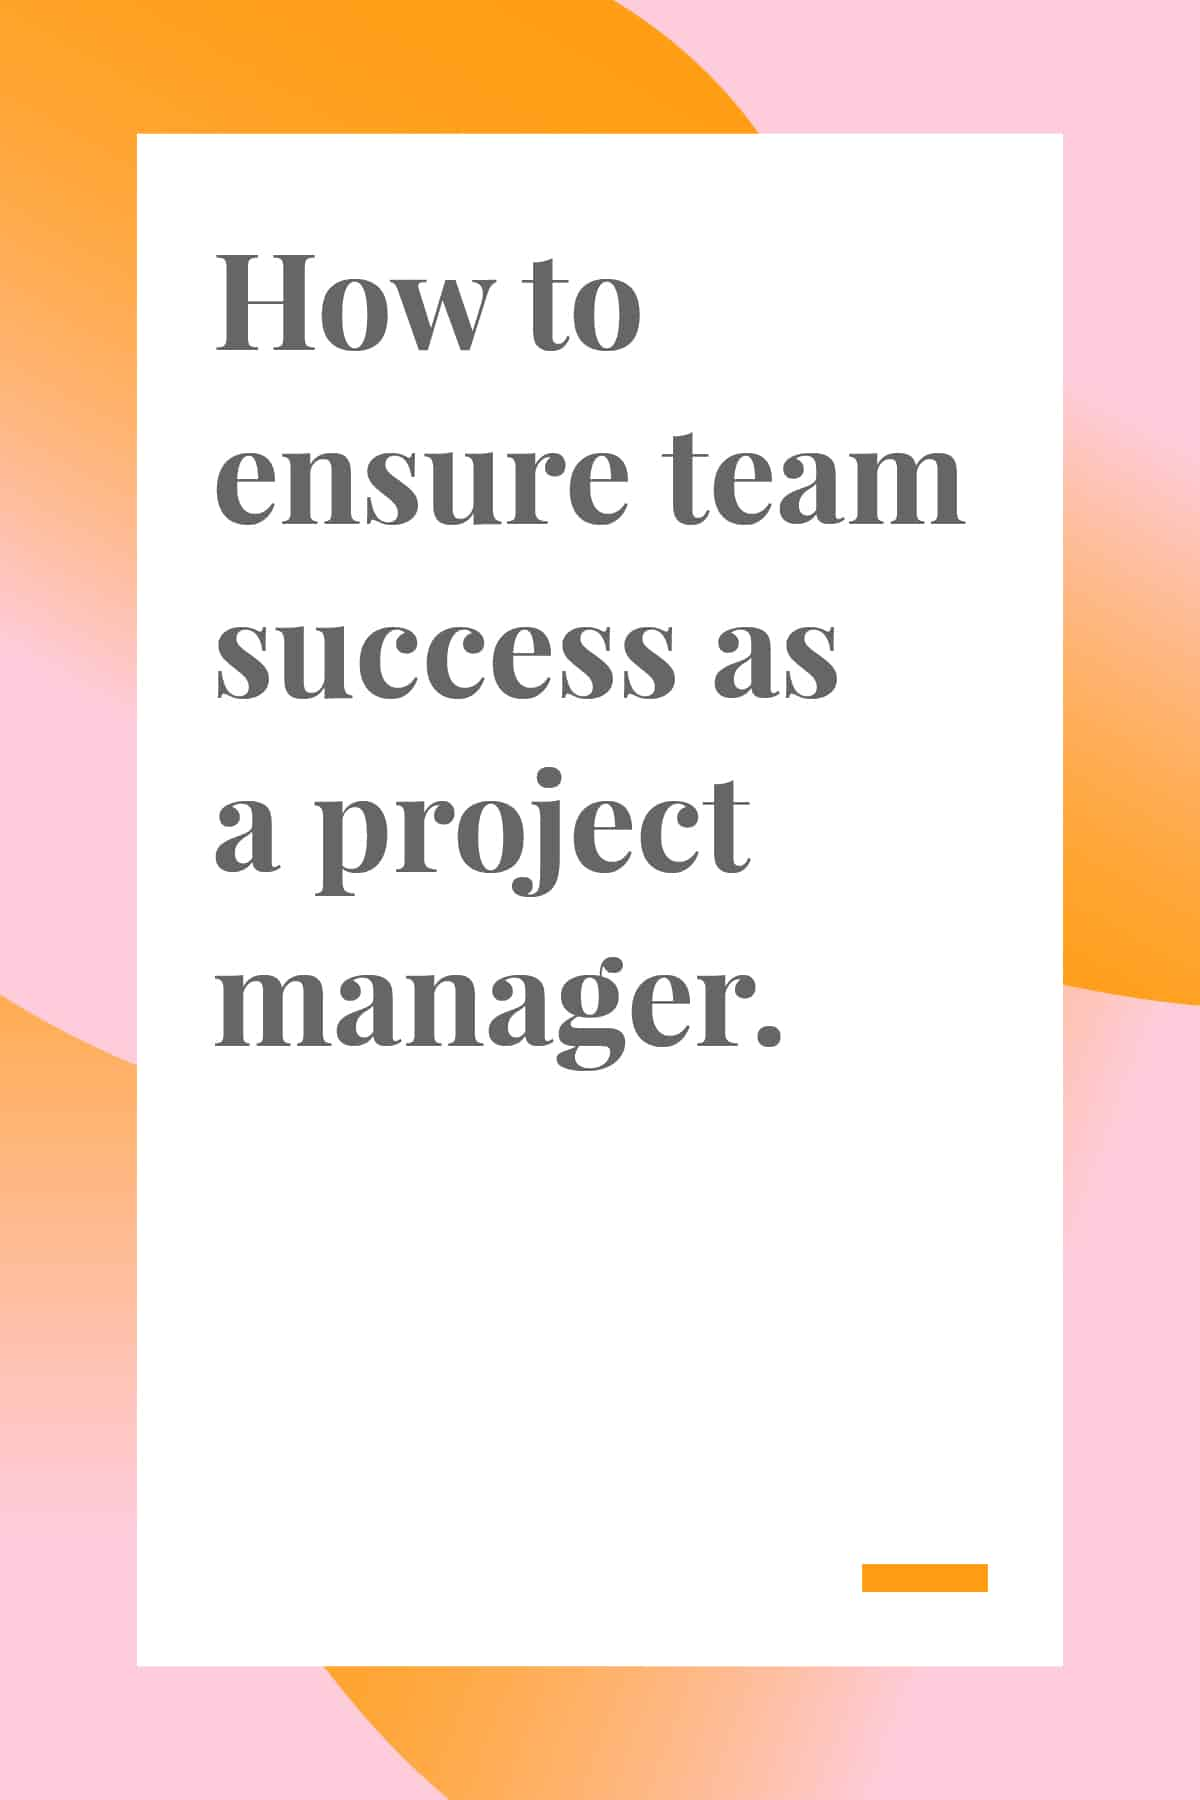 Lead your team to success with these action-packed tips for project managers and team leads. #projectmanagement #leadership #teamwork